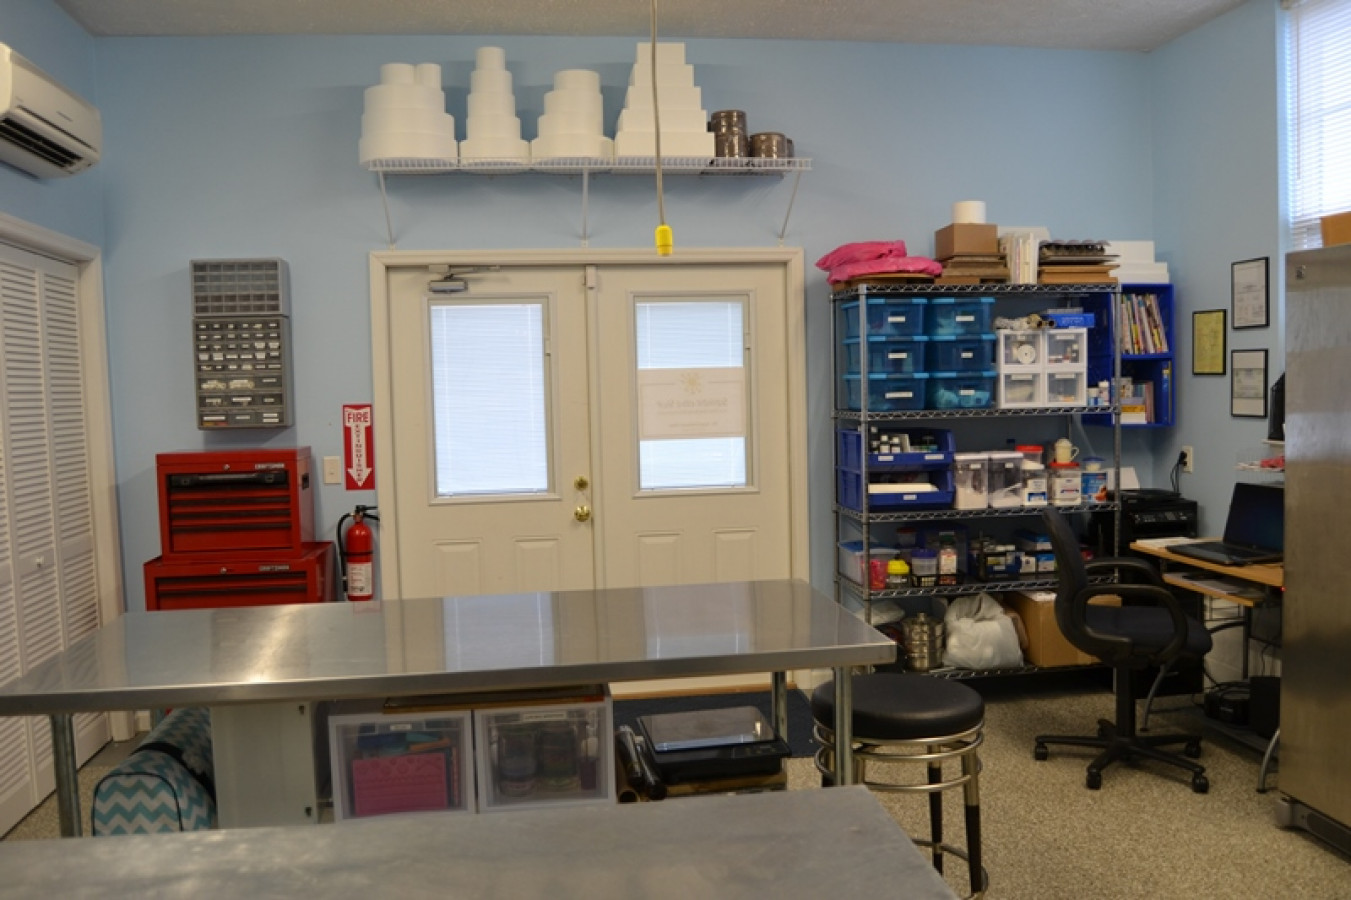 Converting Garage Into Commercial Kitchen Cakecentral Com